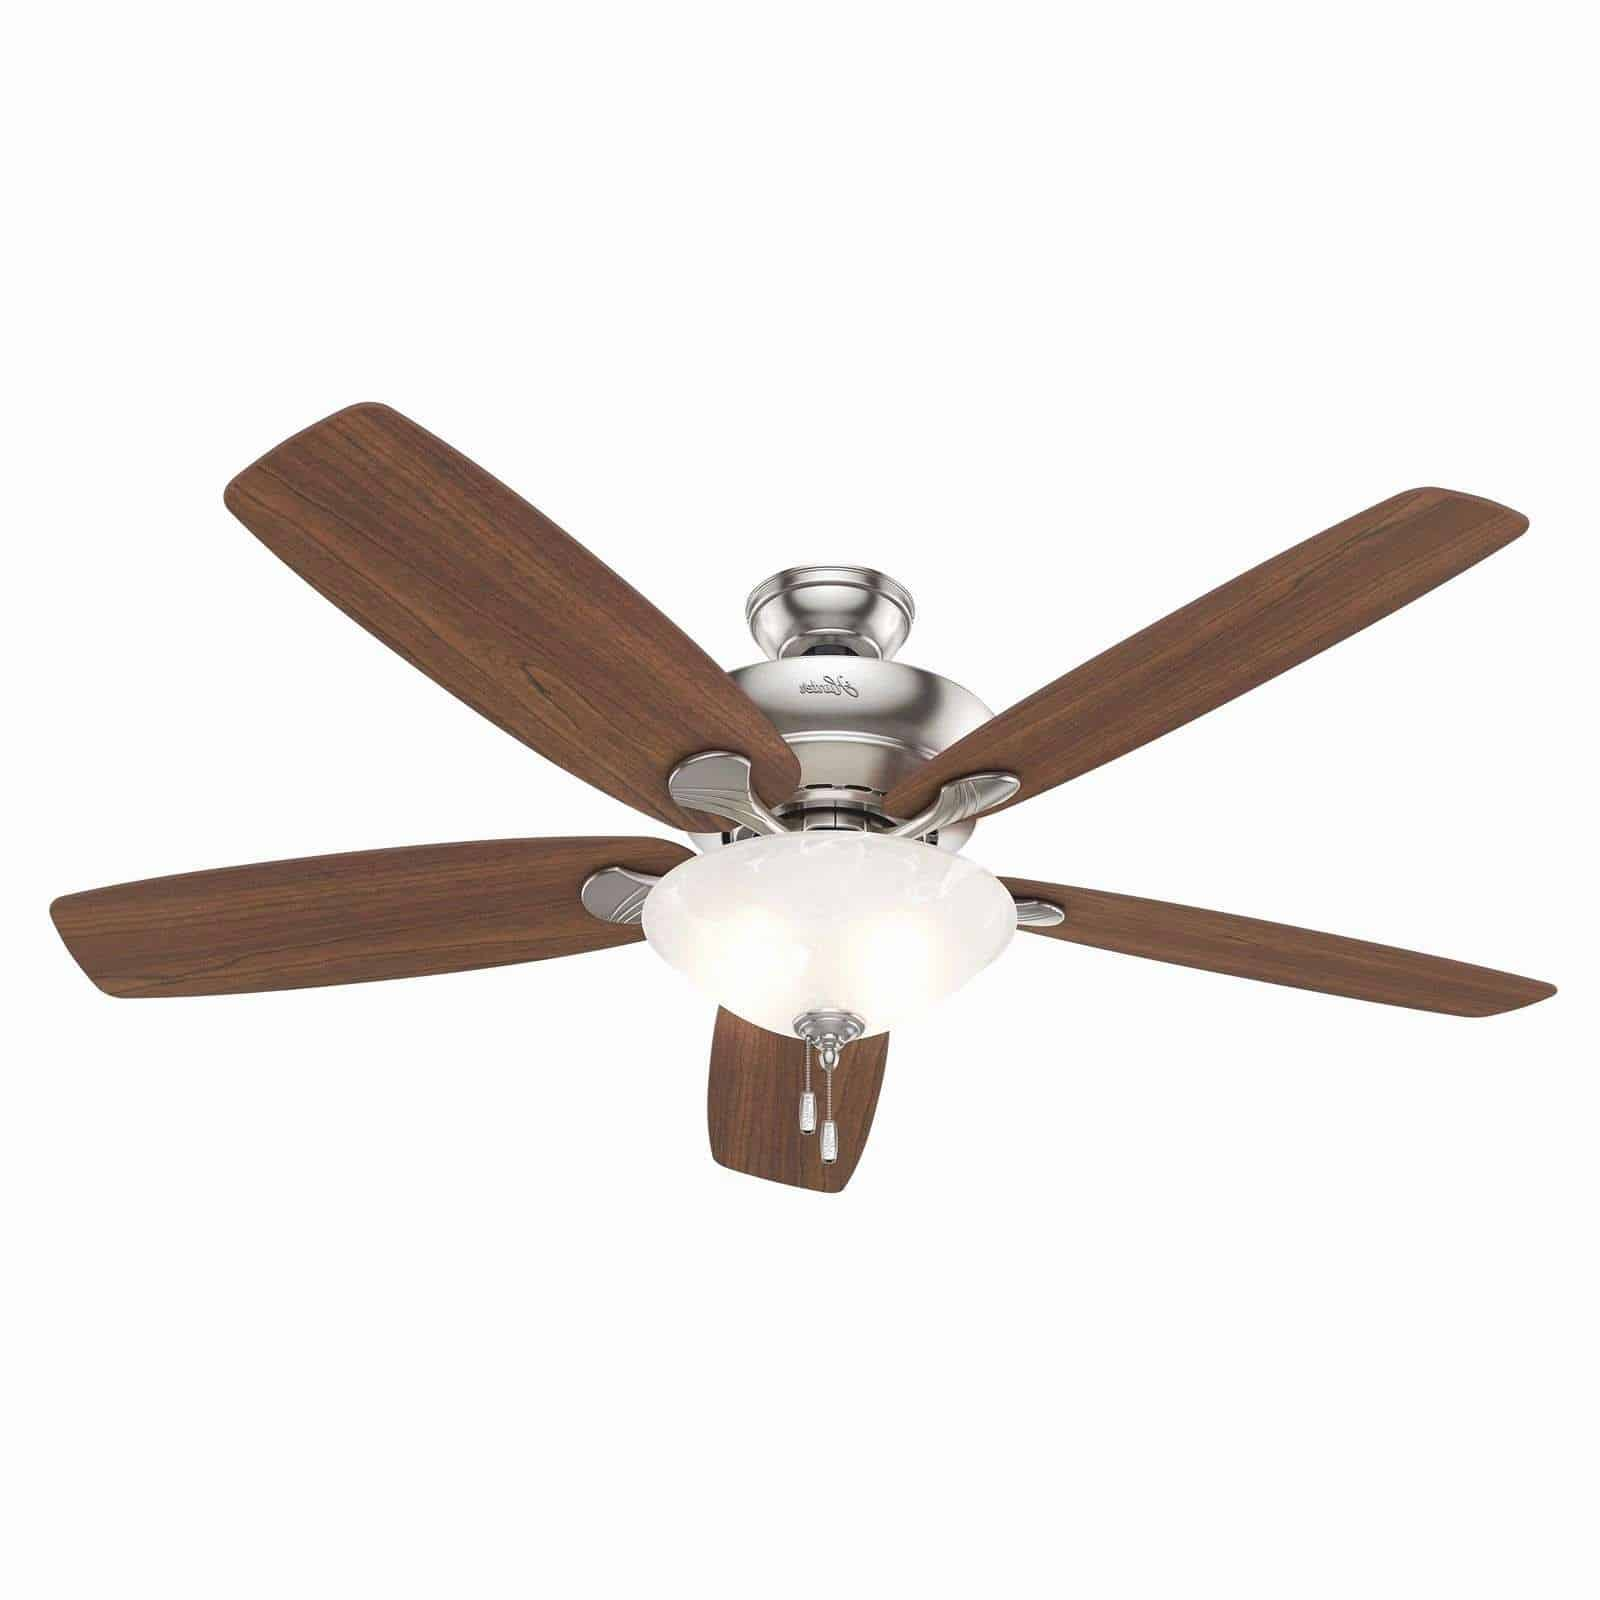 How Much Does It Cost To Install Ceiling Fans Mycoffeepot Org